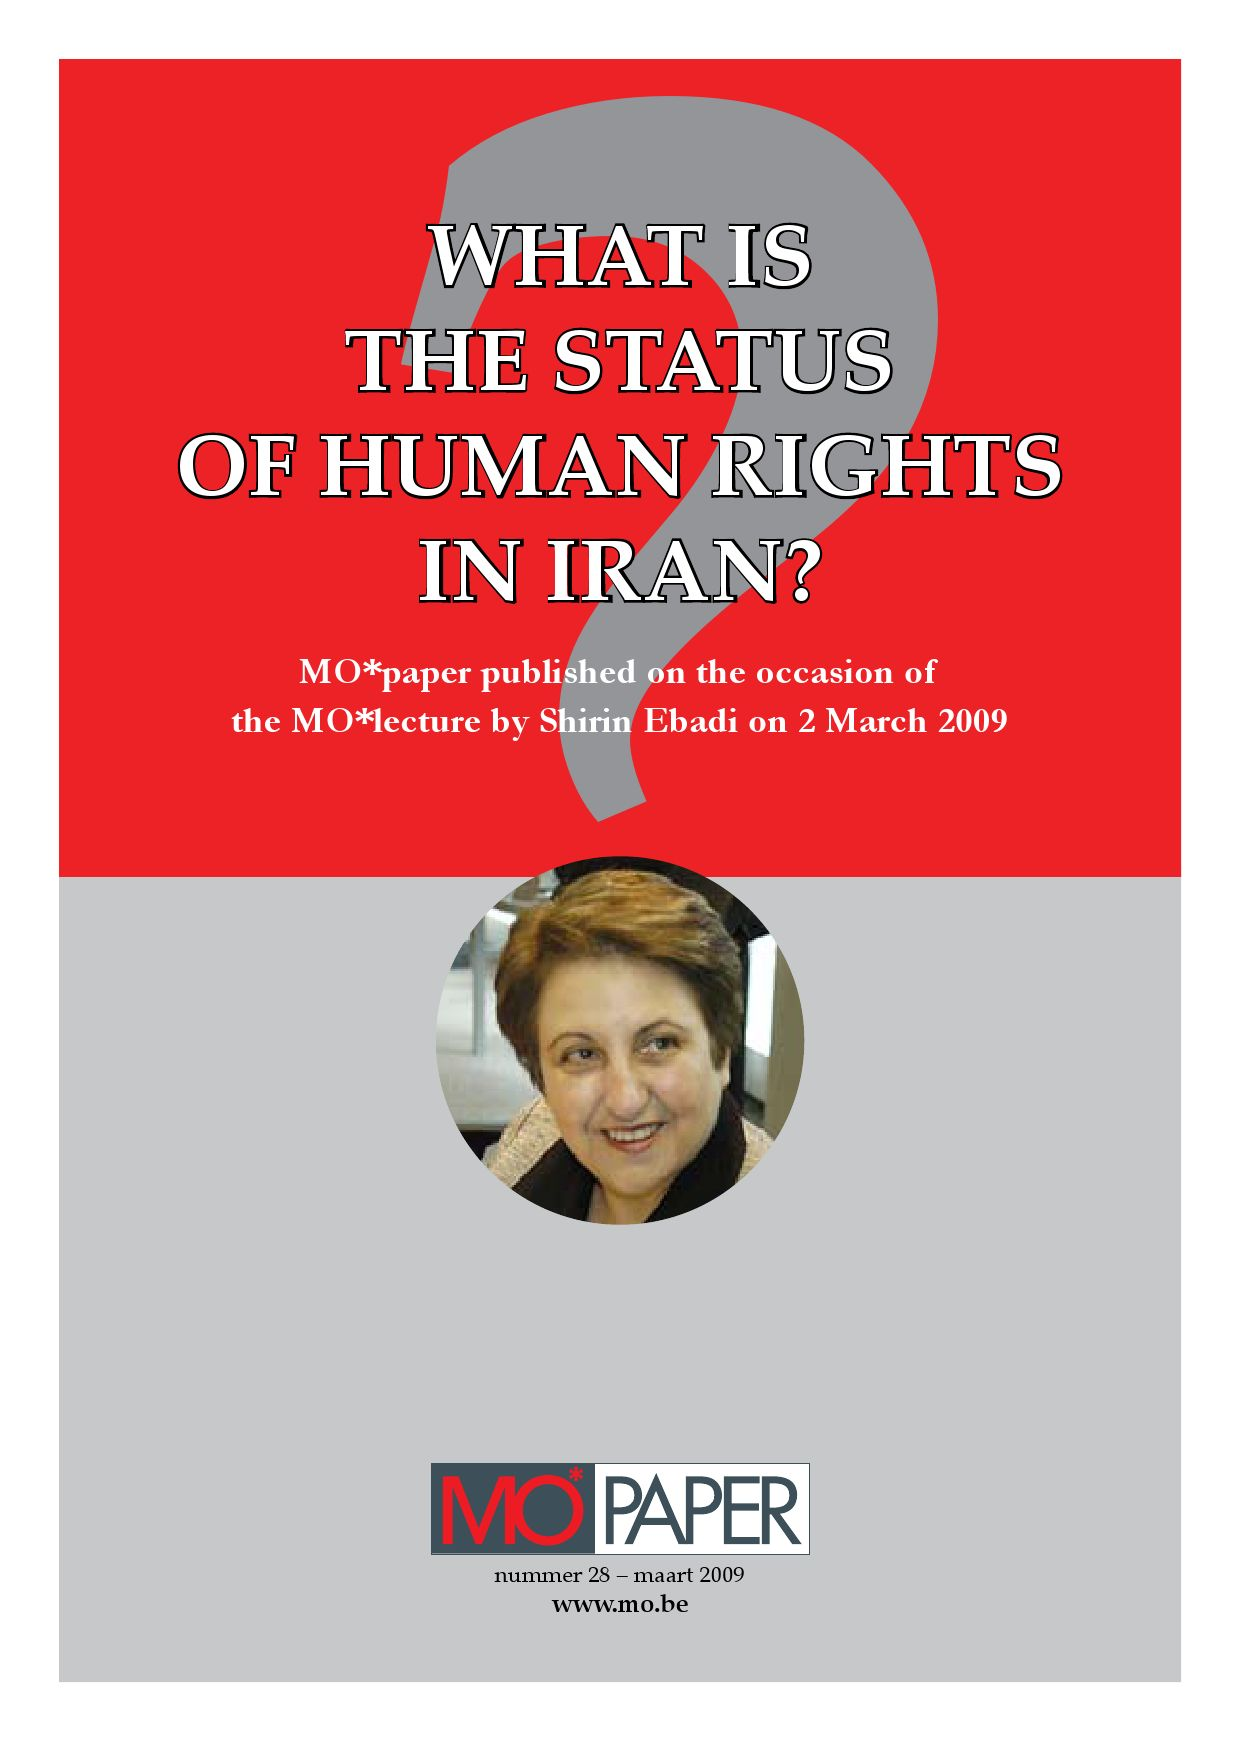 The United States has submitted a report on human rights. Guess who the main offenders